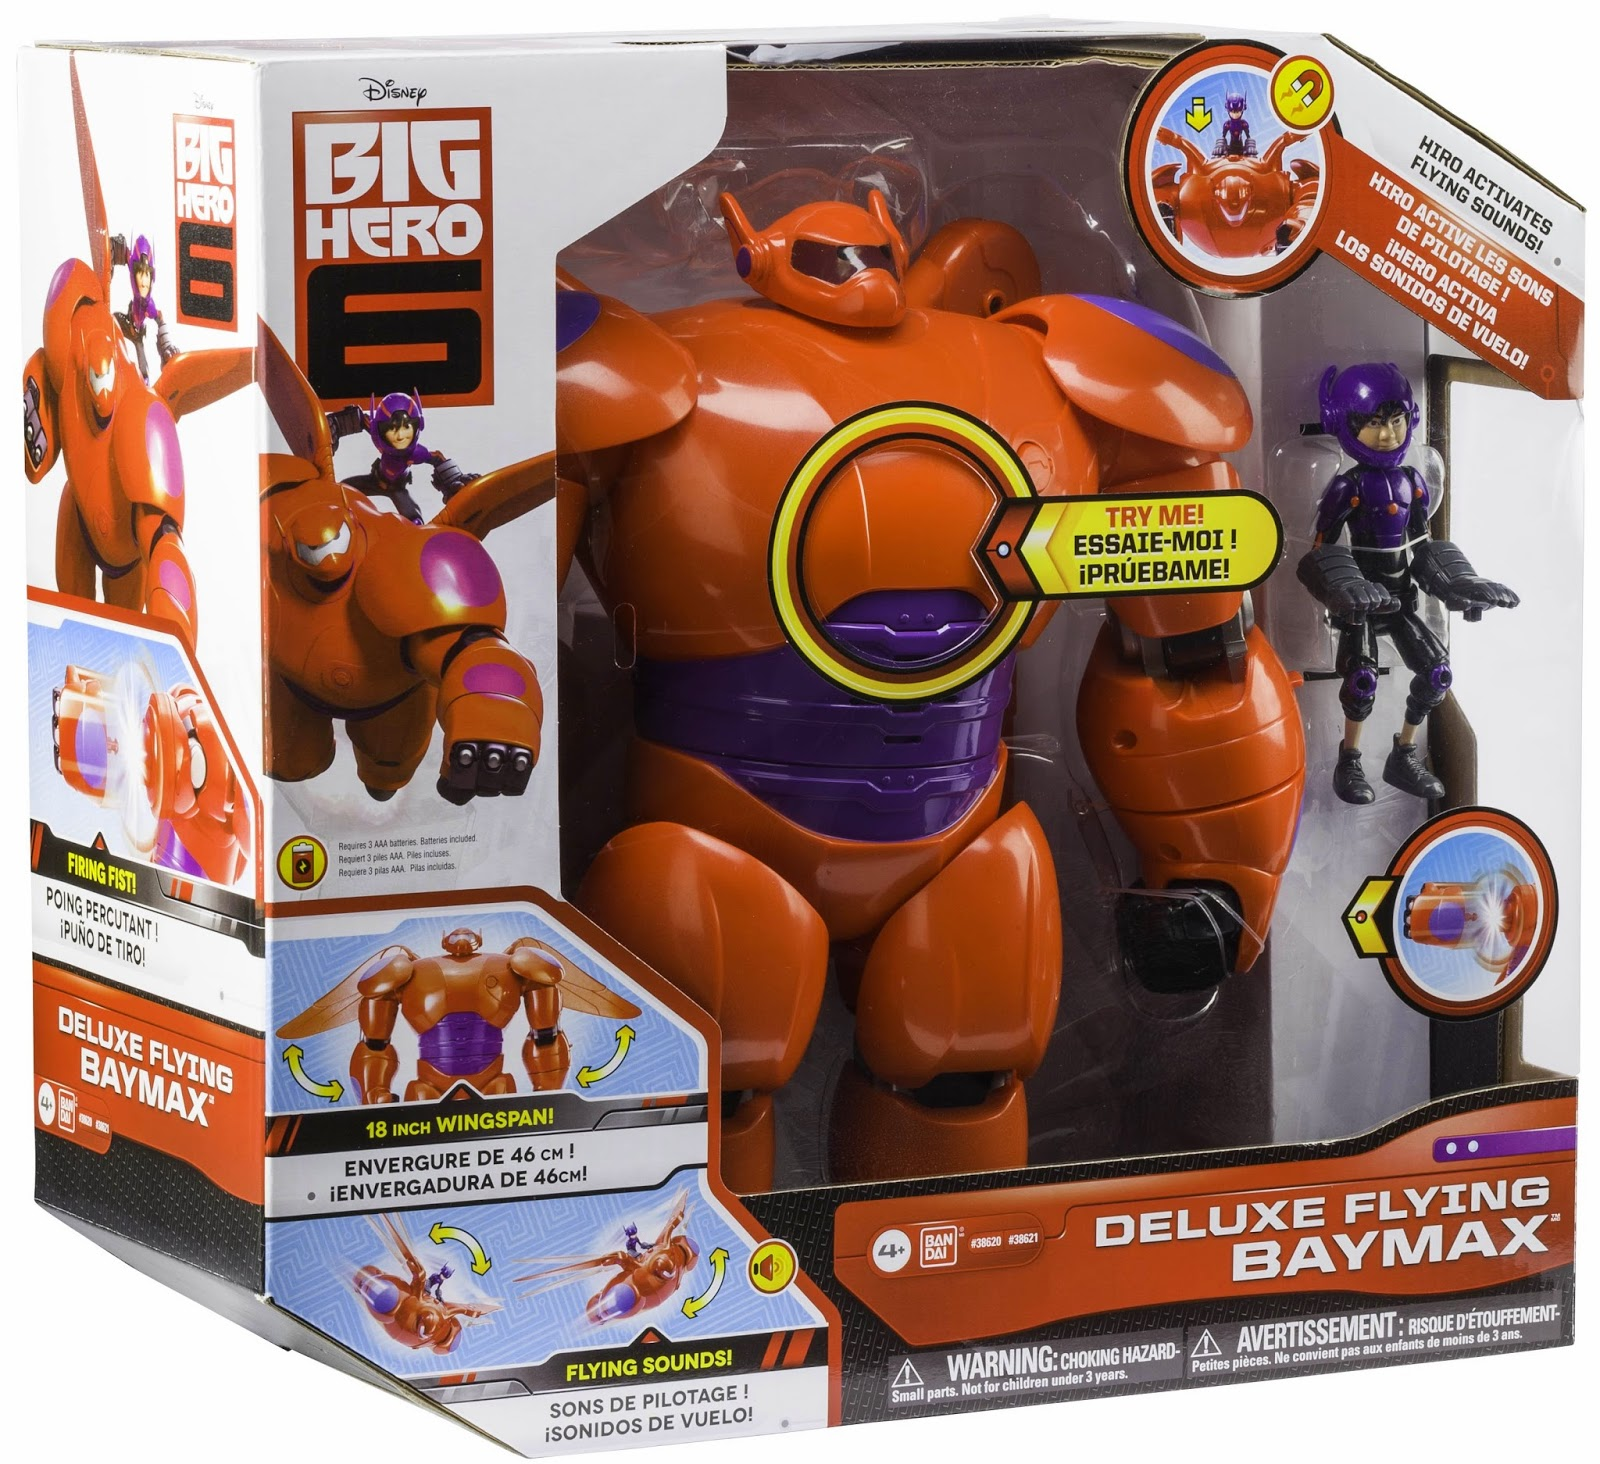 http://stacytilton.blogspot.com/2014/12/holiday-gift-guide-sprukits-big-hero-6.html